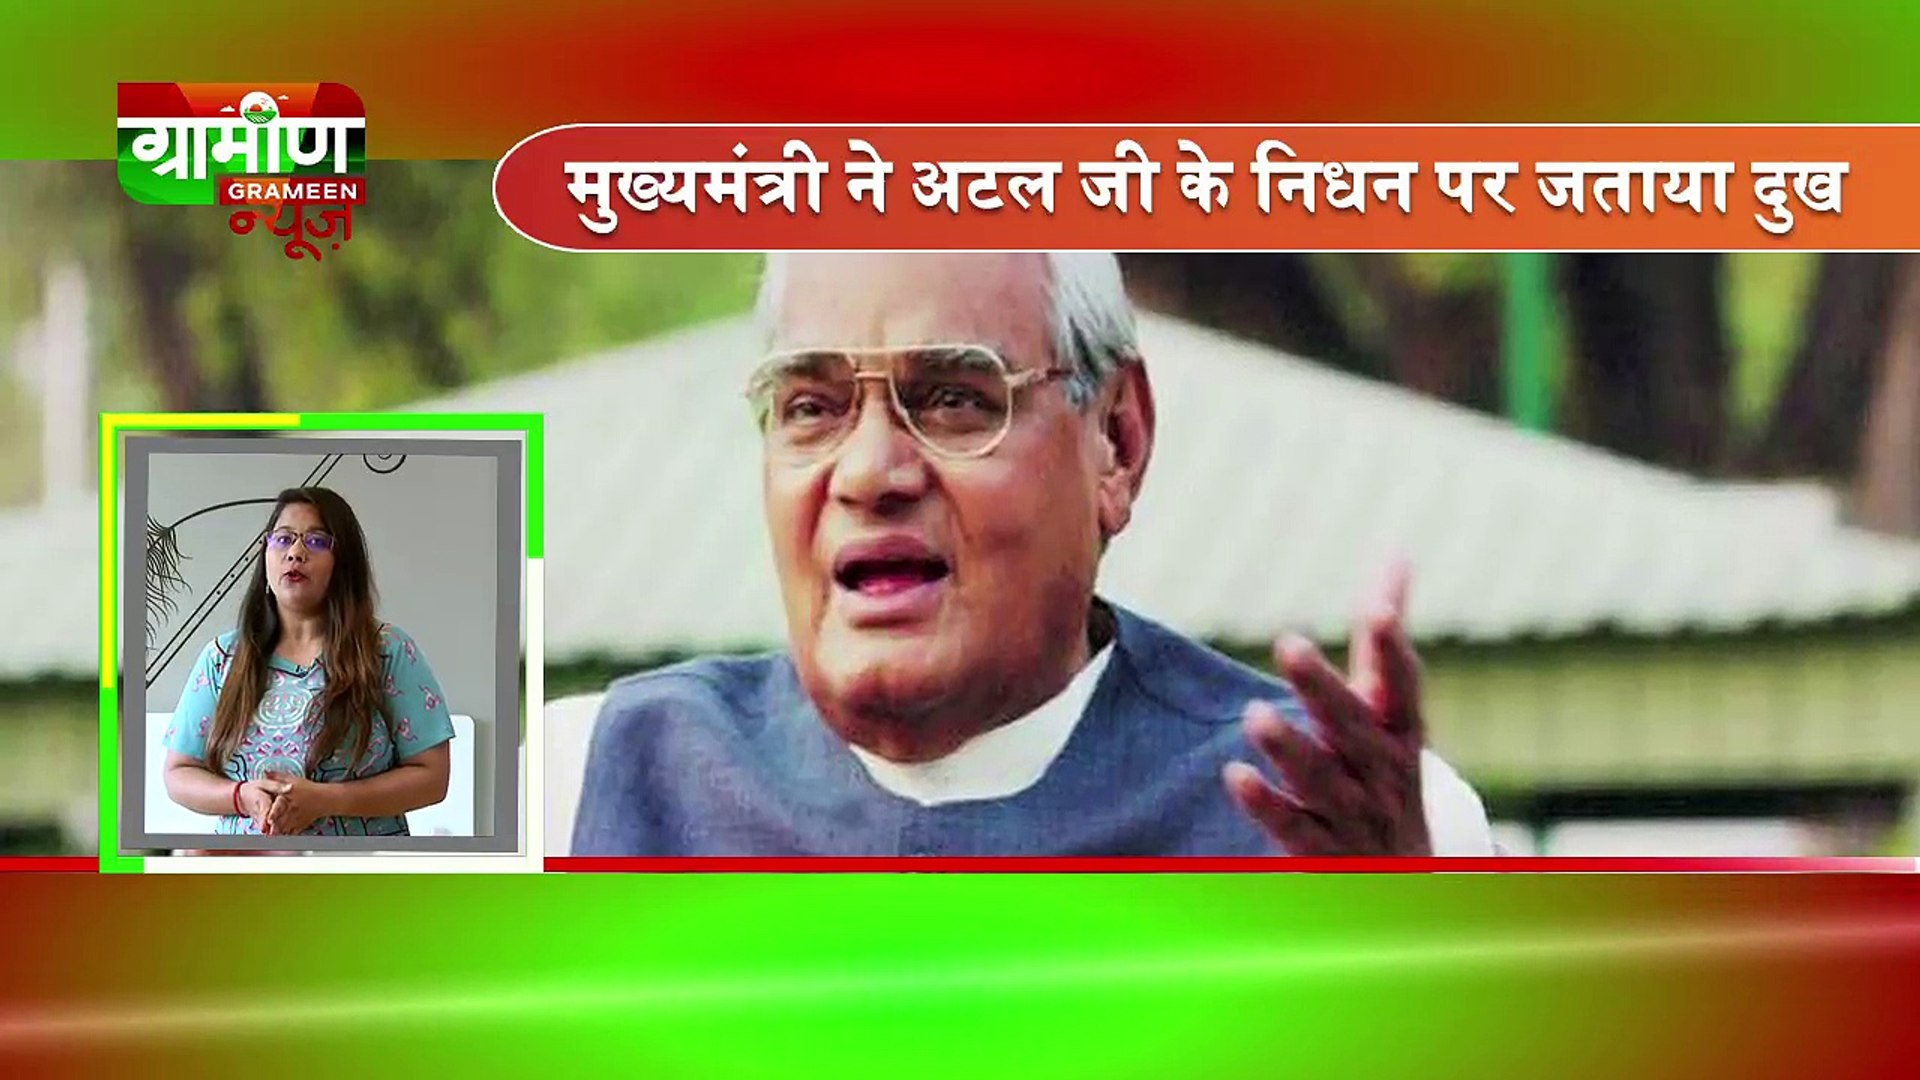 News Bulletin 18th Aug 2018 From Chhattisgarh | Headlines | News Bulletin | Samachar | Hindi News